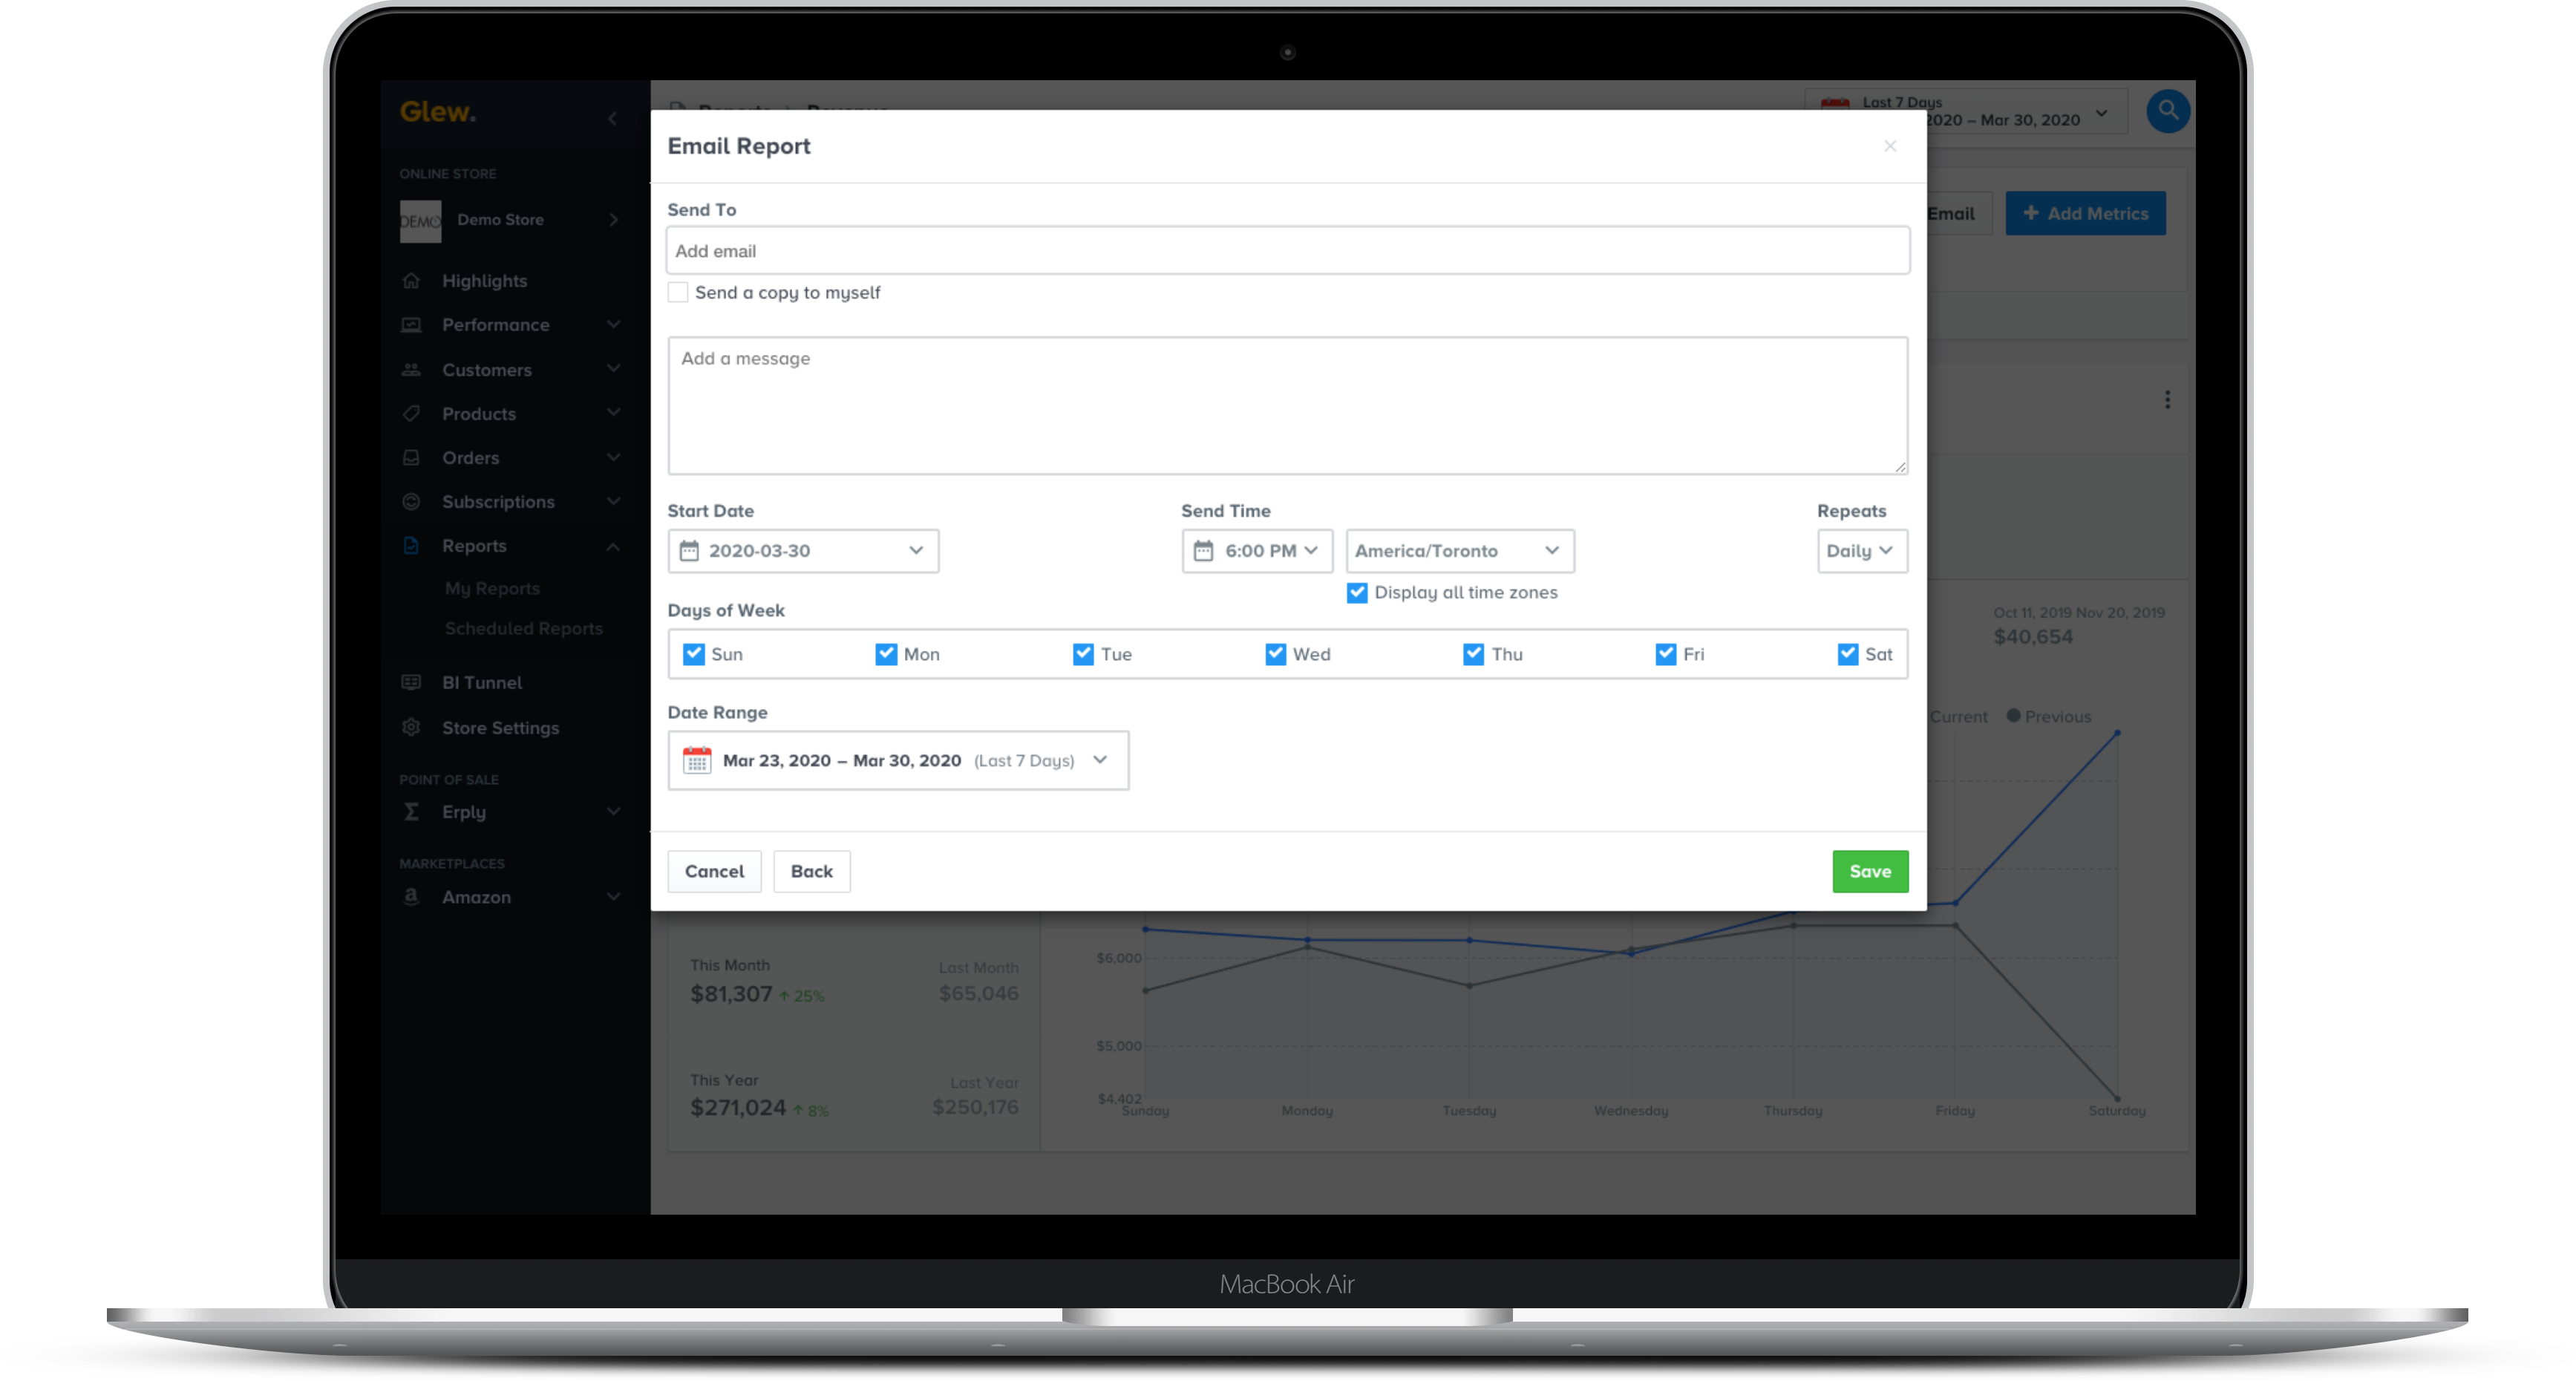 Glew lets you create reports using any metric, visualization or filter and schedule it to send to anyone inside or outside of your organization daily, weekly or monthly